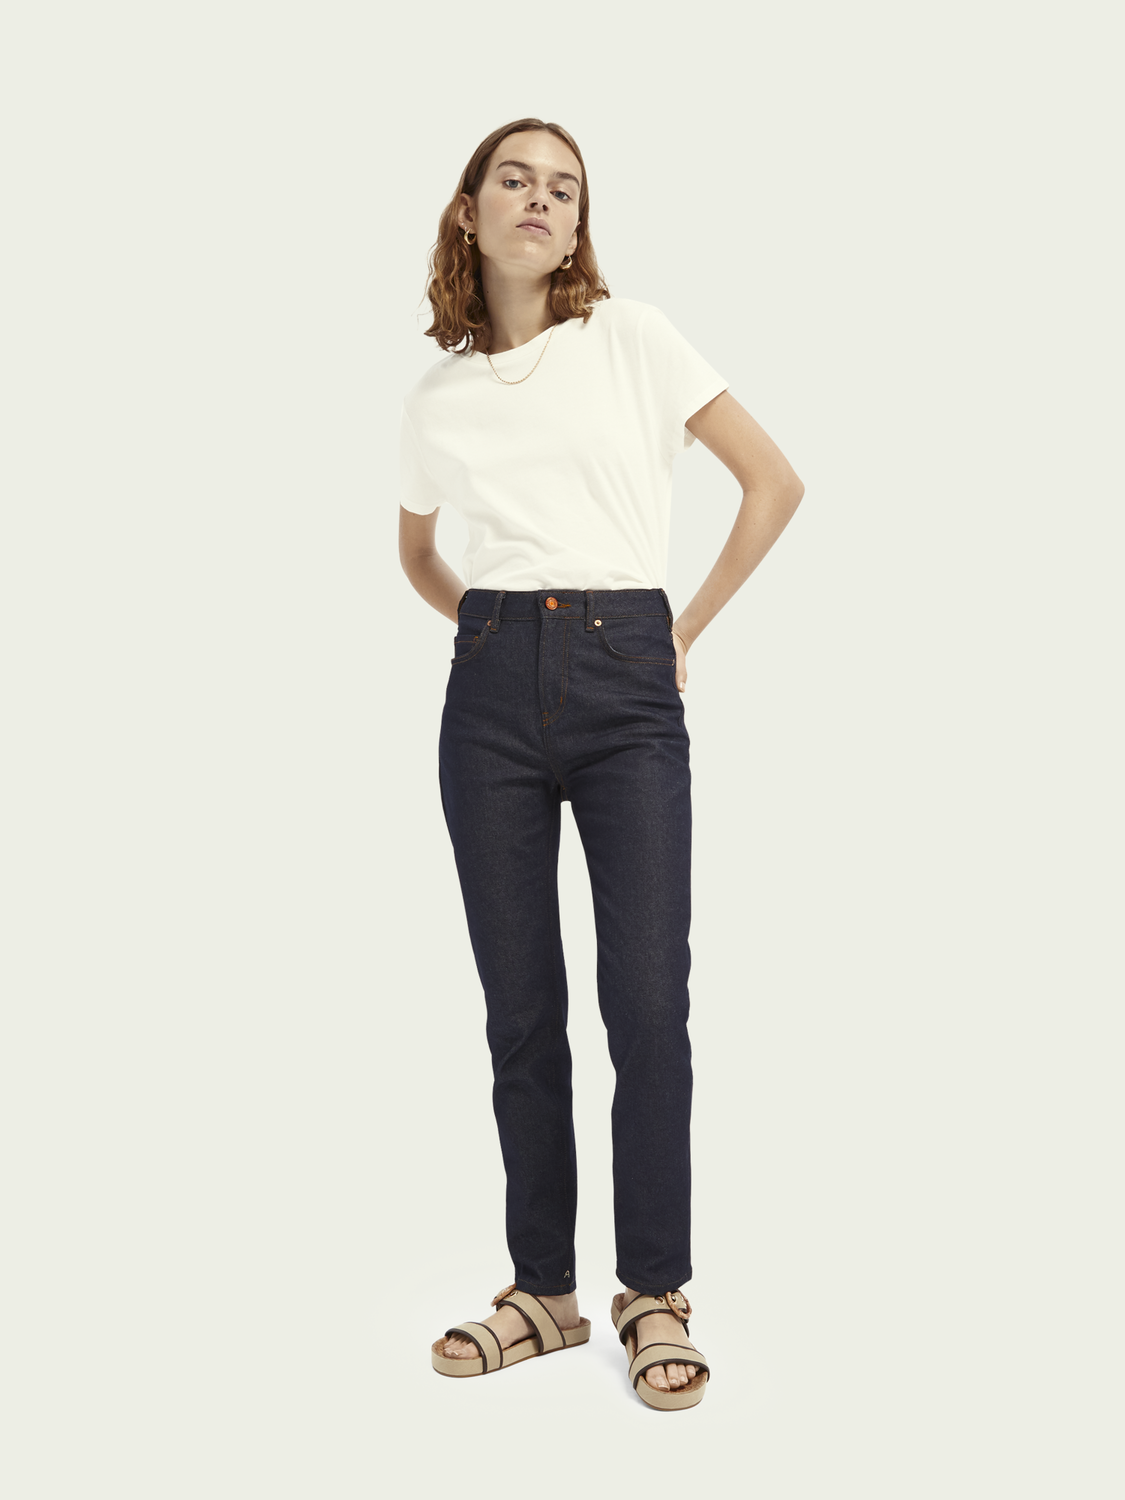 Damen High Five High-Rise Slim-Leg Jeans mit recycelter Baumwolle– Who Dares Wins